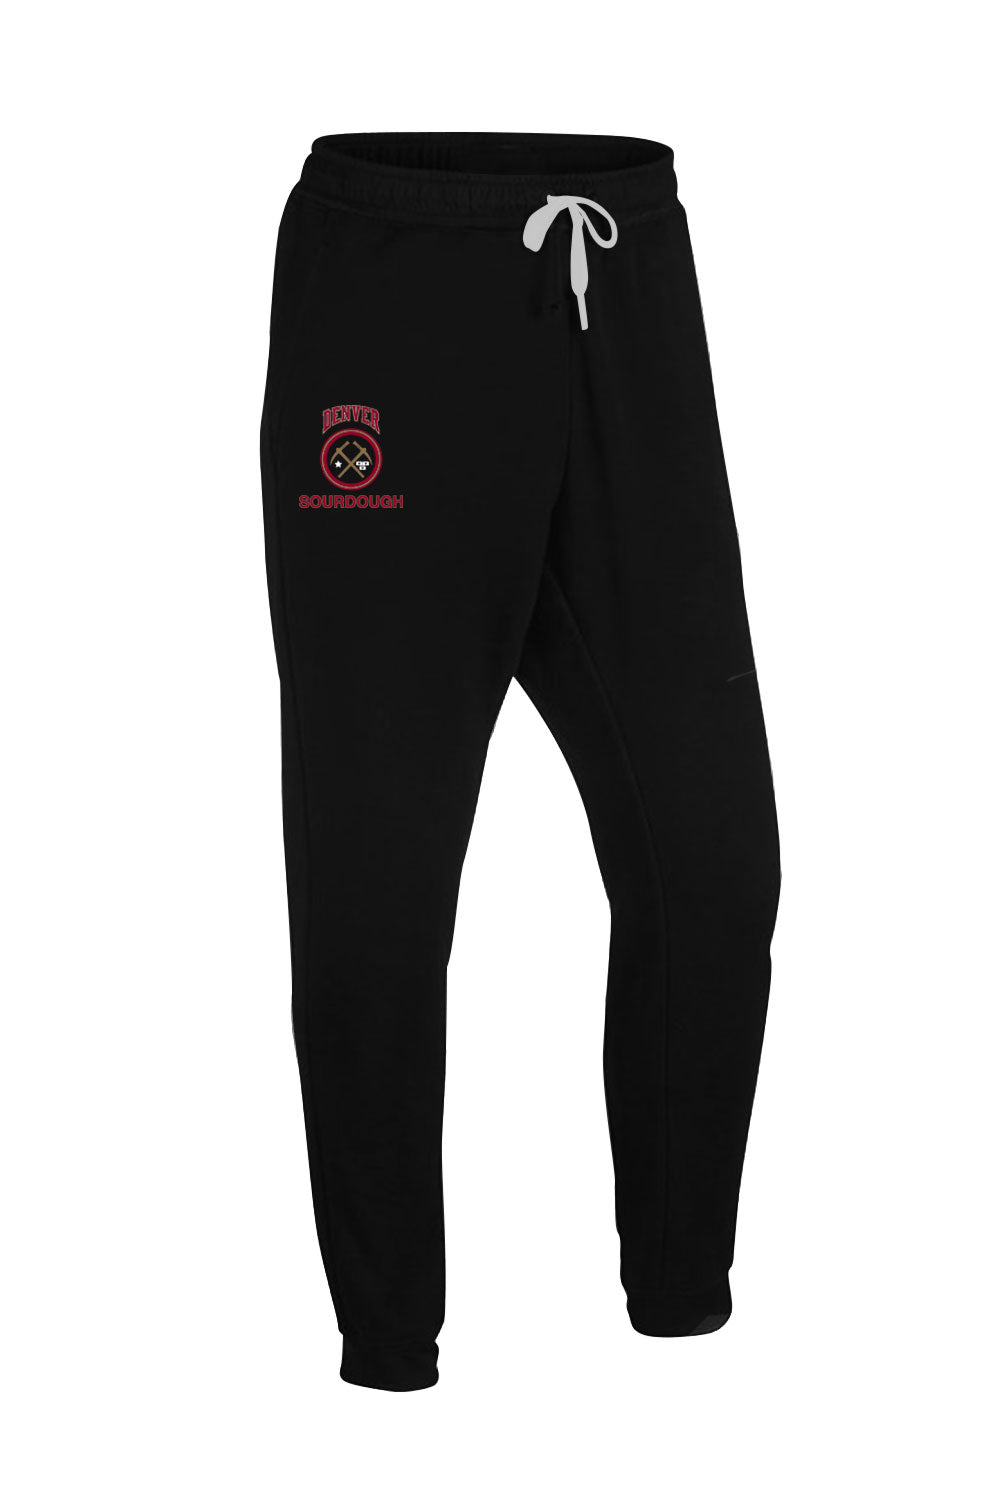 University of Denver Sourdough Joggers (Black)